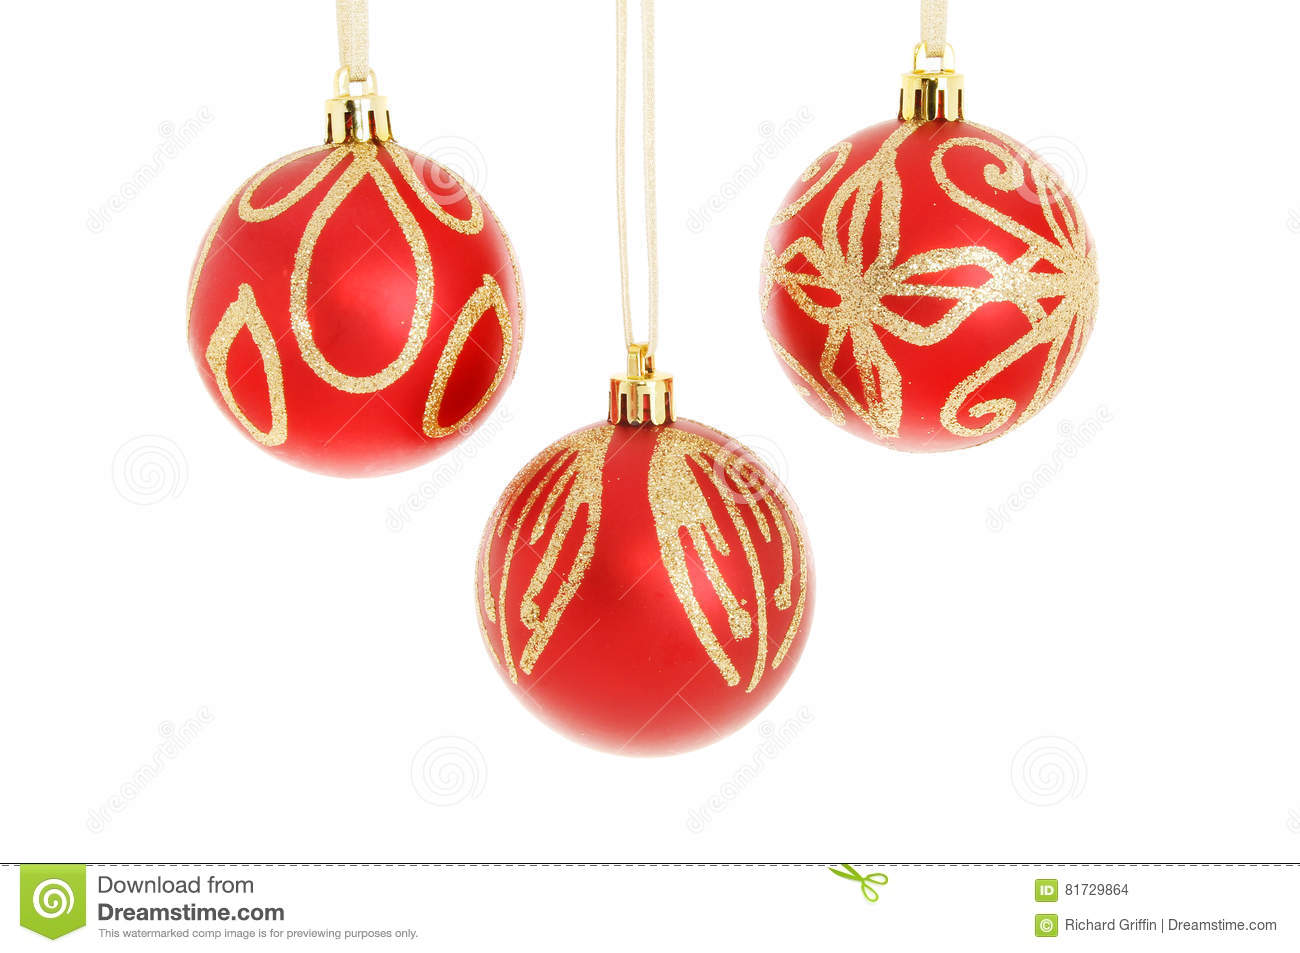 131b49f89716 Three Red And Gold Christmas Baubles Stock Photo - Image of bauble ...